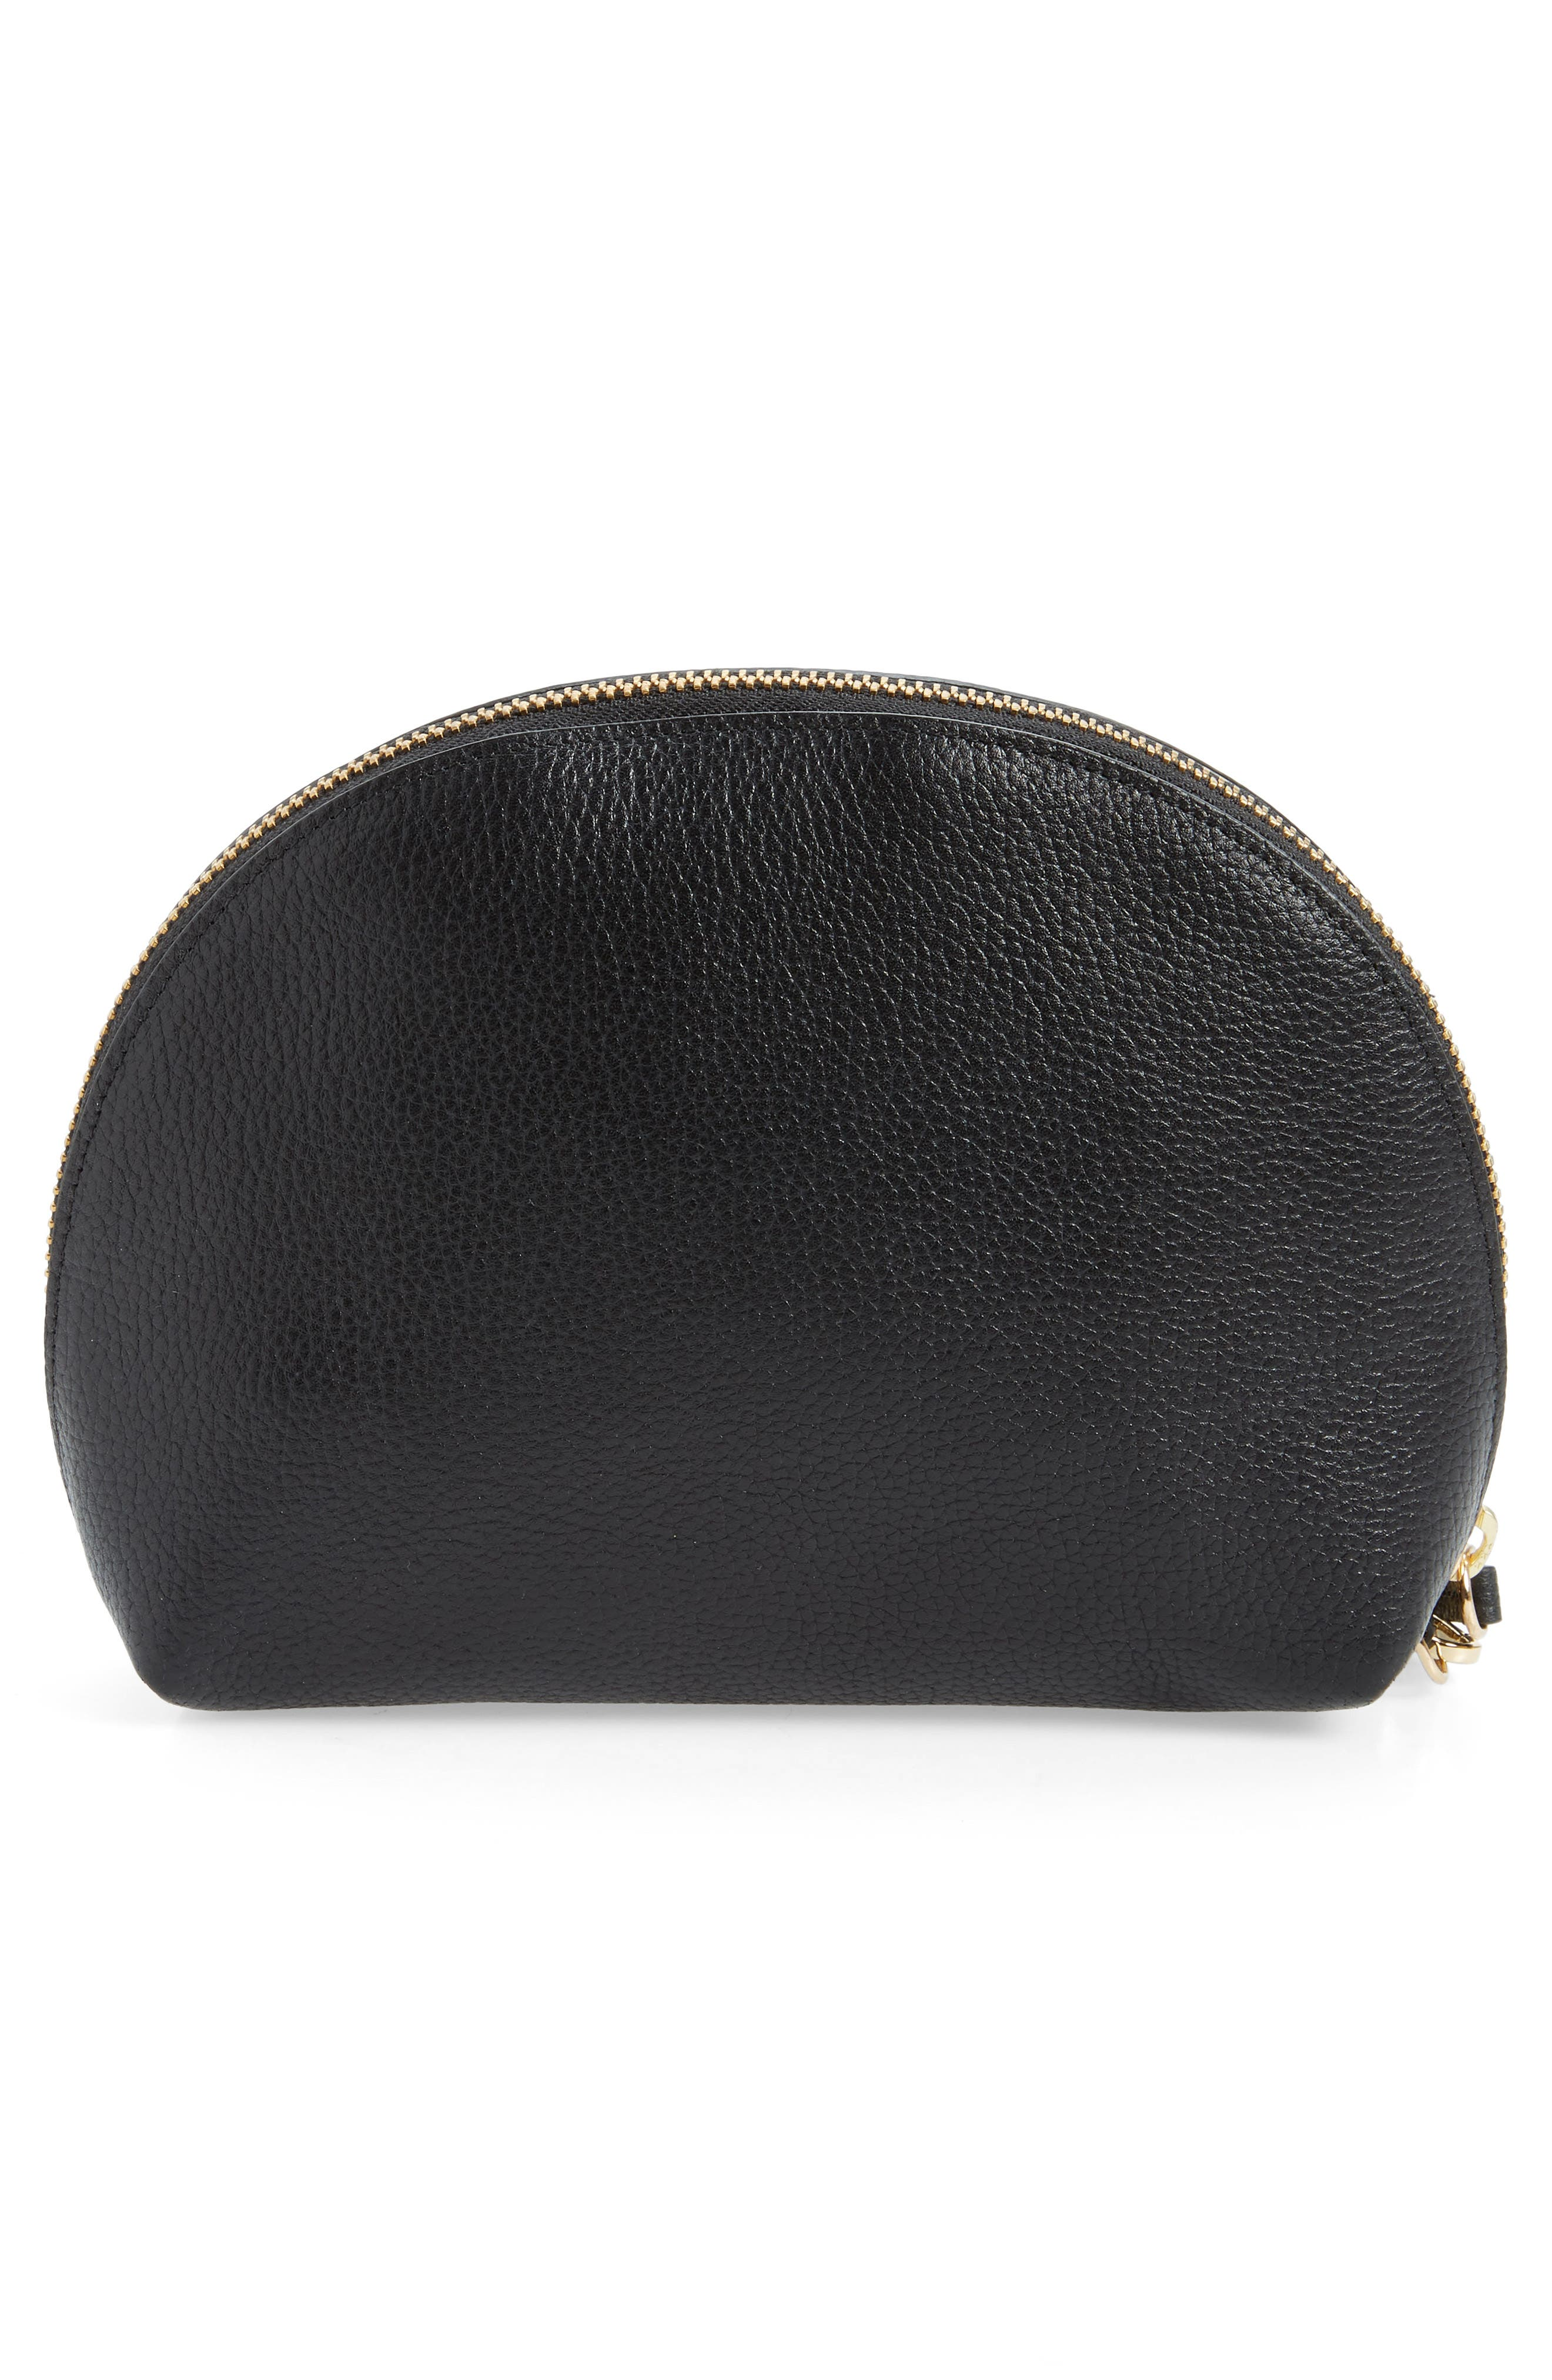 Sophia Leather Wristlet,                             Alternate thumbnail 3, color,                             001